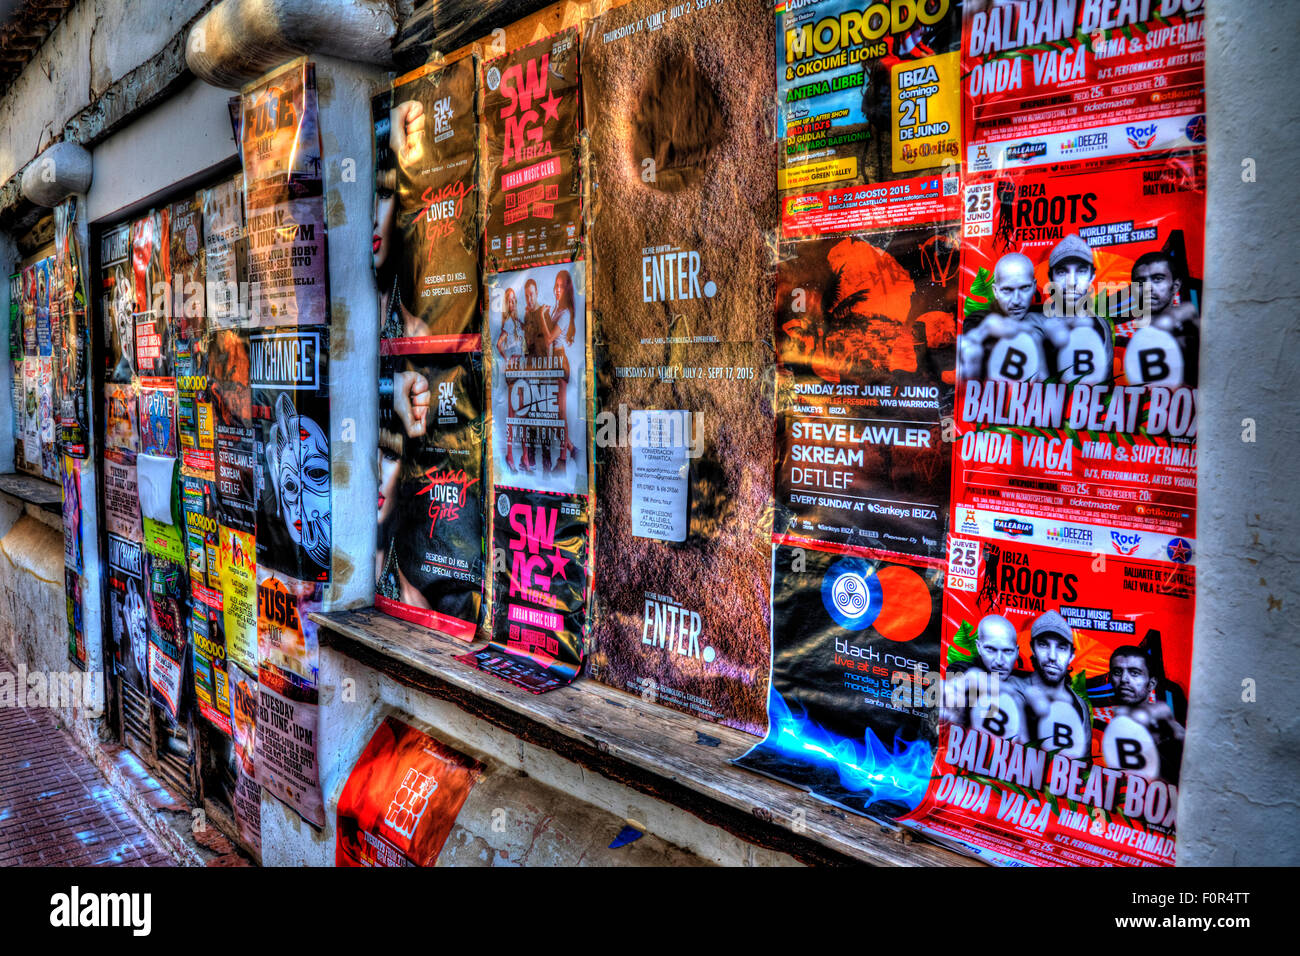 posters stuck on wall advertising bill posting adverts Ibiza clubs concerts events advertised bill posters adverts - Stock Image